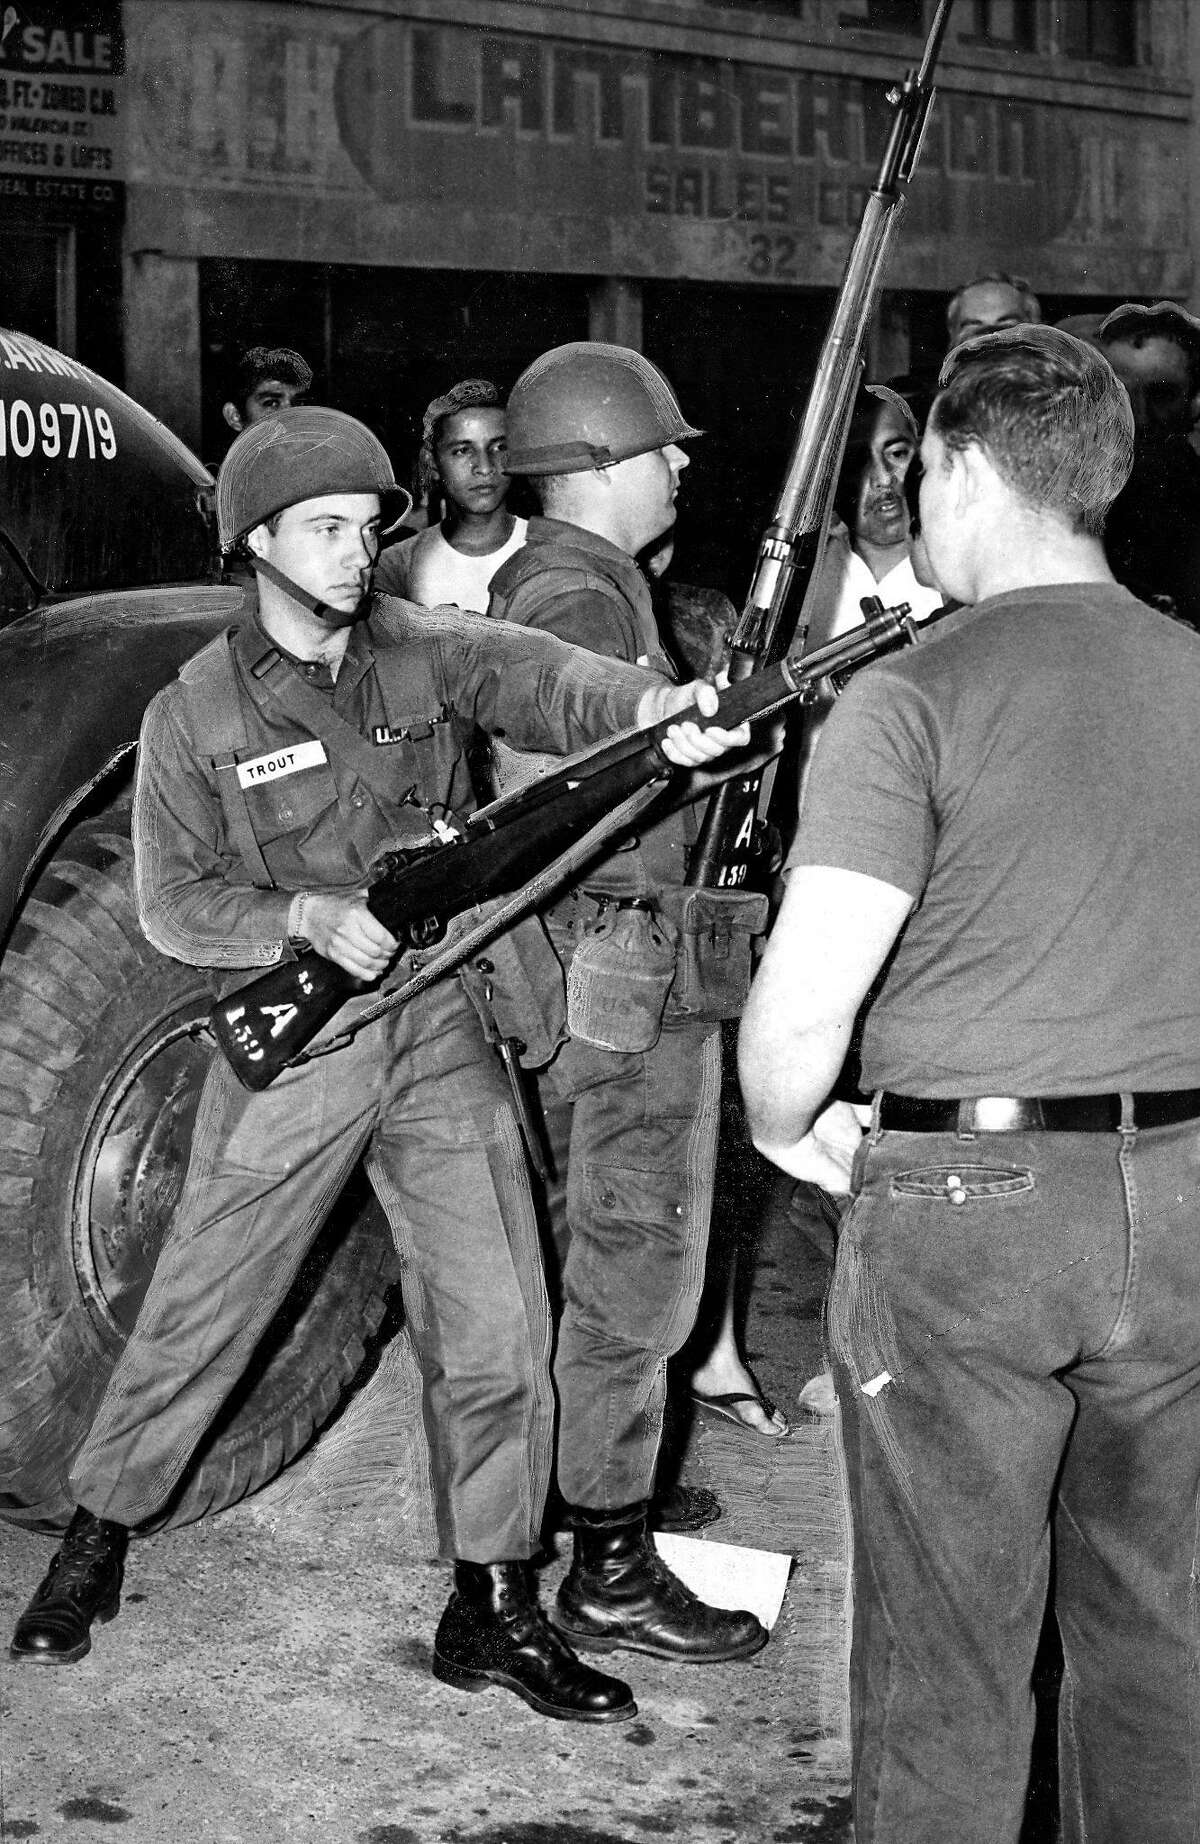 On Sept. 27, 1966, protests break out in Hunters Point after a white police officer shot and killed an unarmed Black teenager. The unrest resulted in a curfew for the neighborhood.